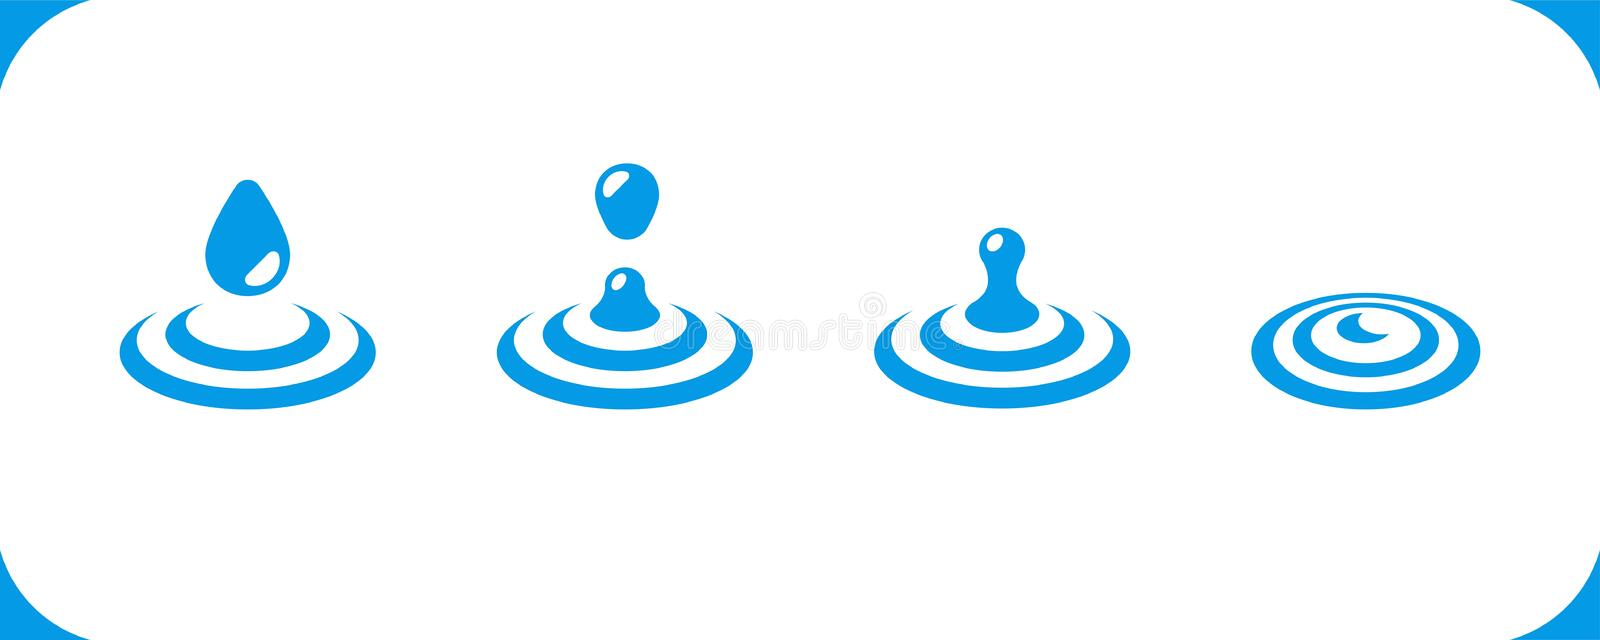 Water icon set. Water drop on water surface icon set,vector and illustration stock illustration